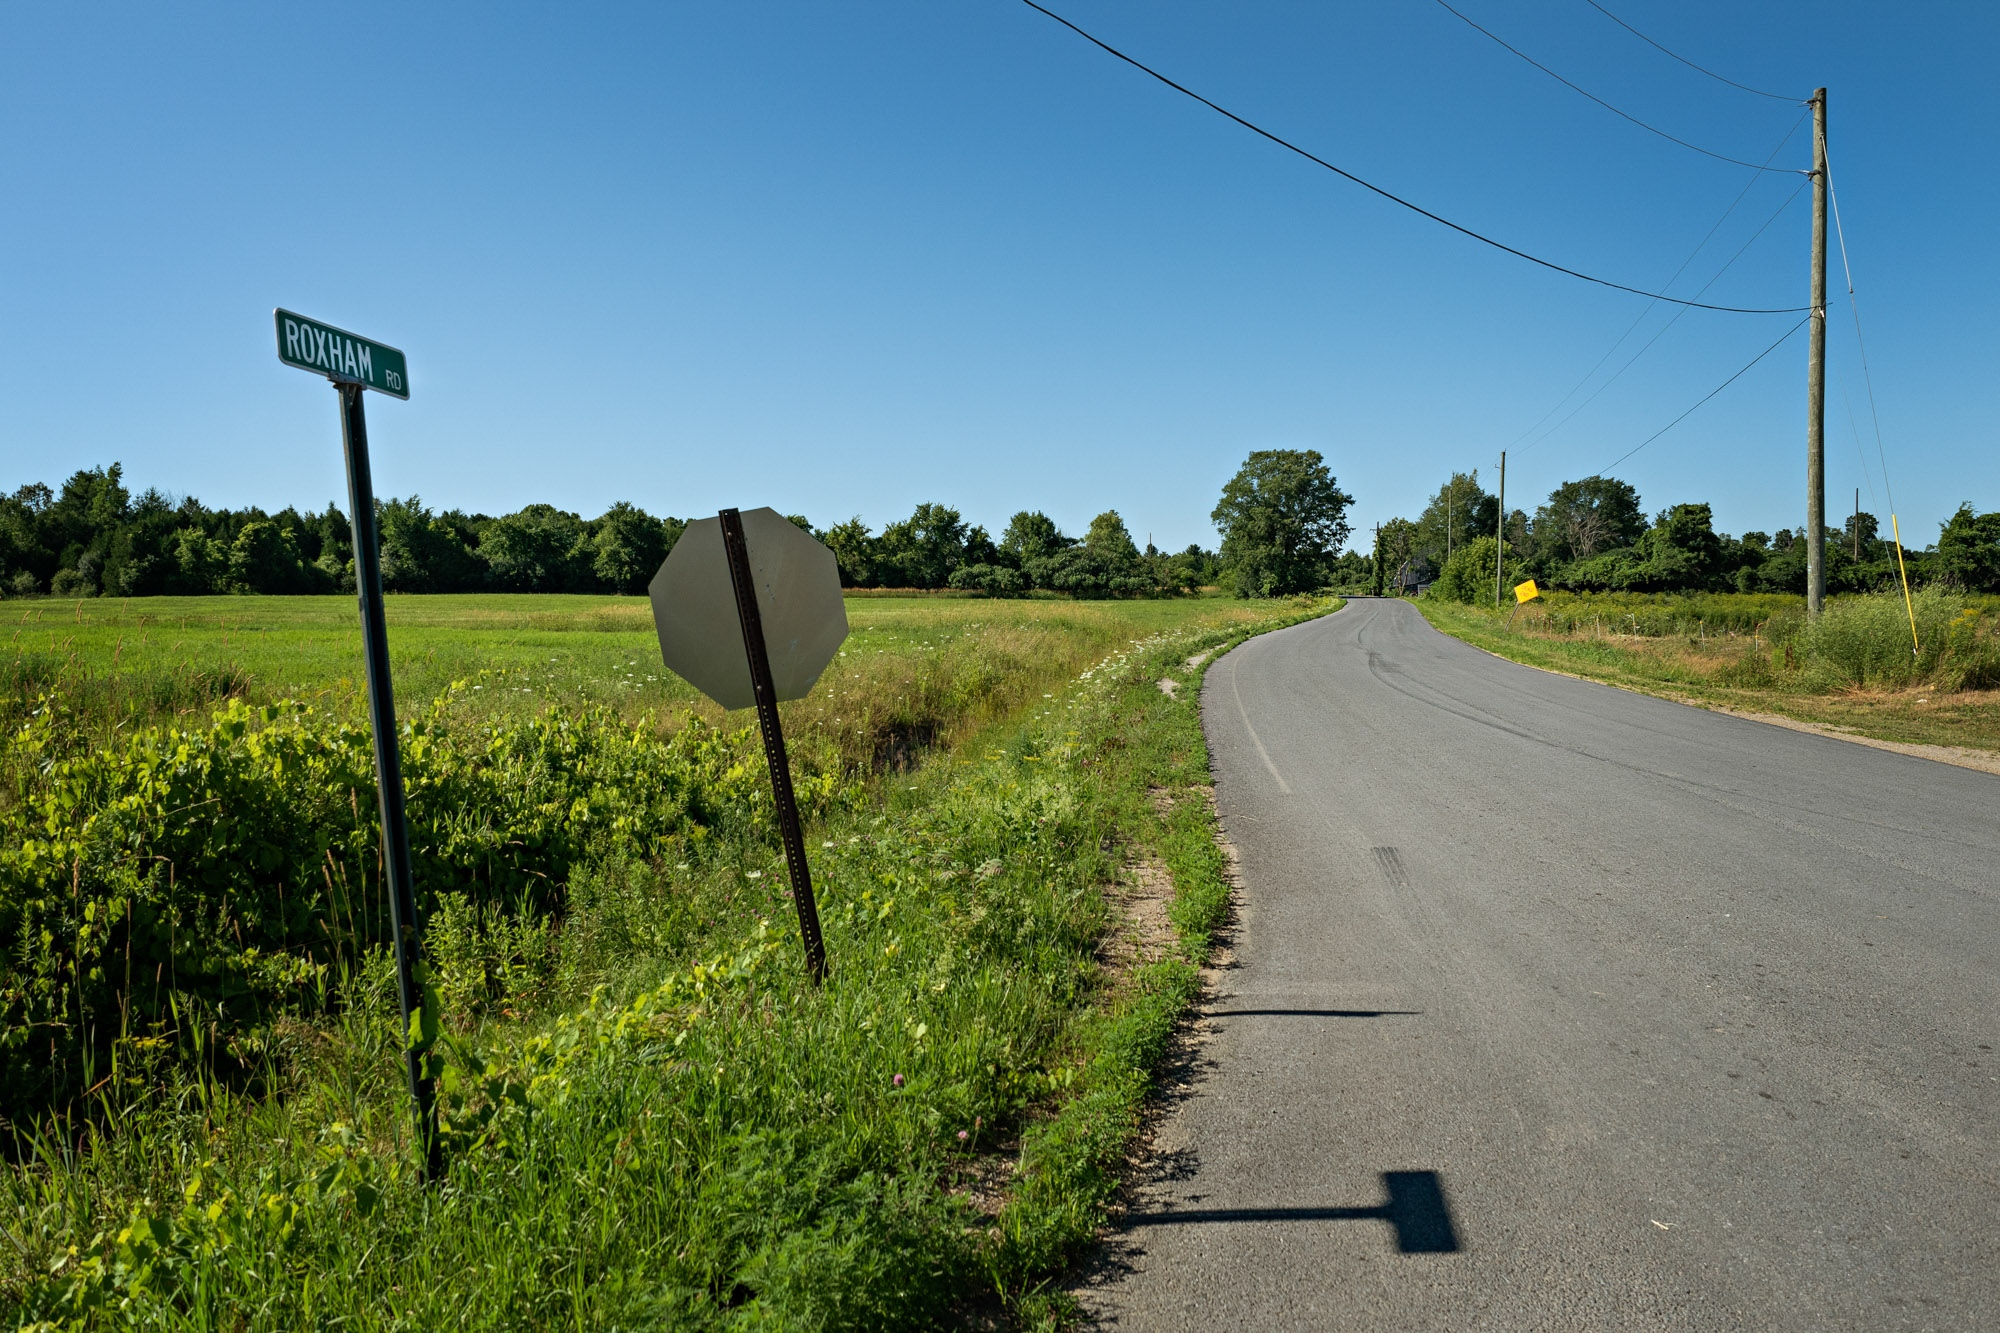 The beginning of Roxham Road, in Champlain, N.Y., where it intersects with the famous North Star Road — said to have been a guiding light to slaves on the run nearly two centuries ago.